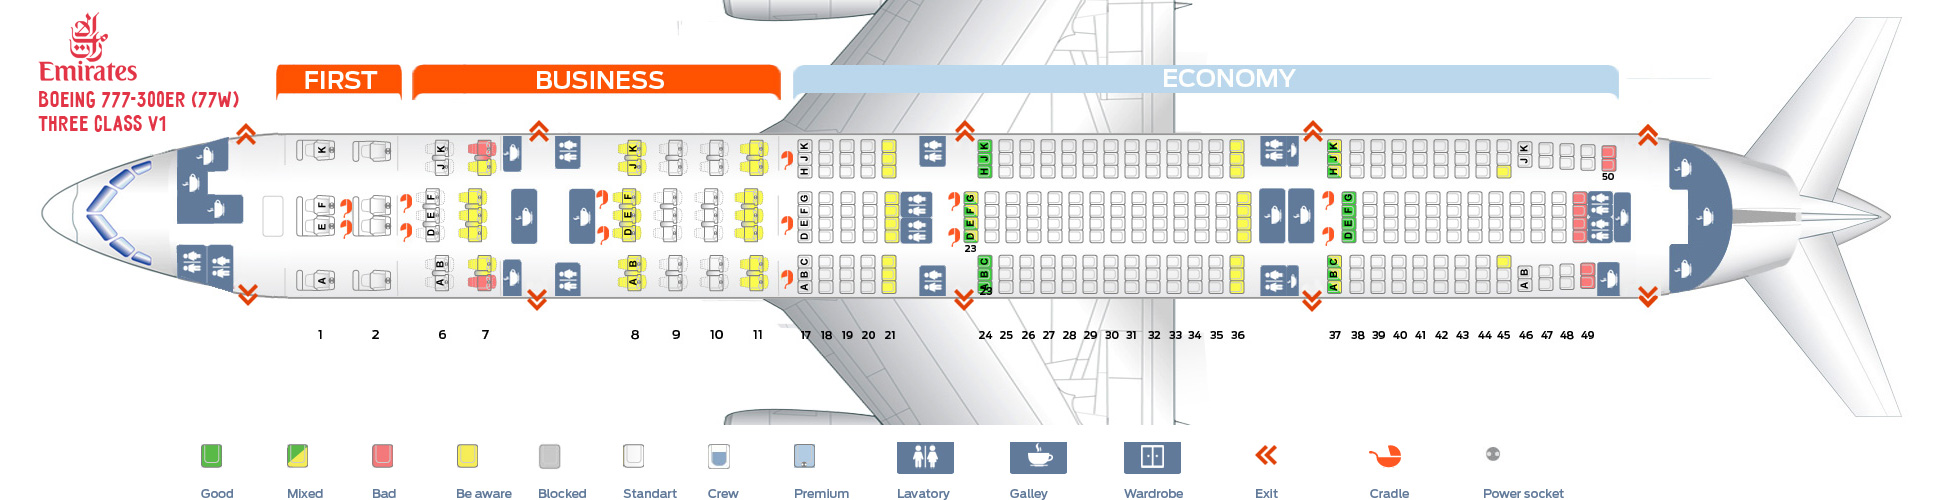 Emirates Seat Map Seat map Boeing 777 300 Emirates. Best seats in the plane Emirates Seat Map